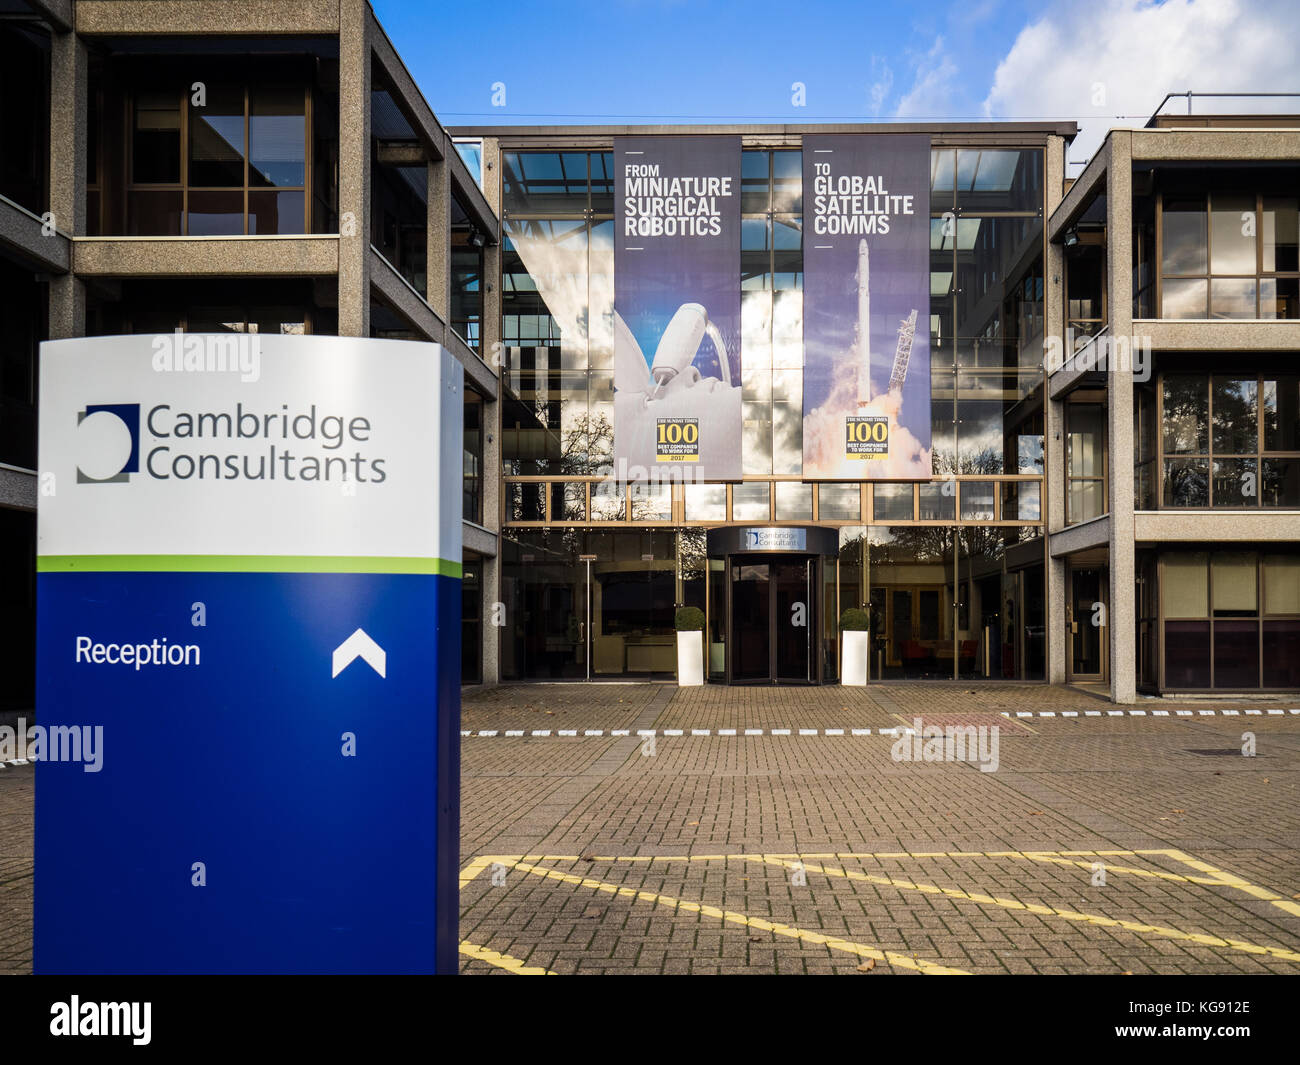 Cambridge Consultants Offices on Cambridge Science Park - Stock Image